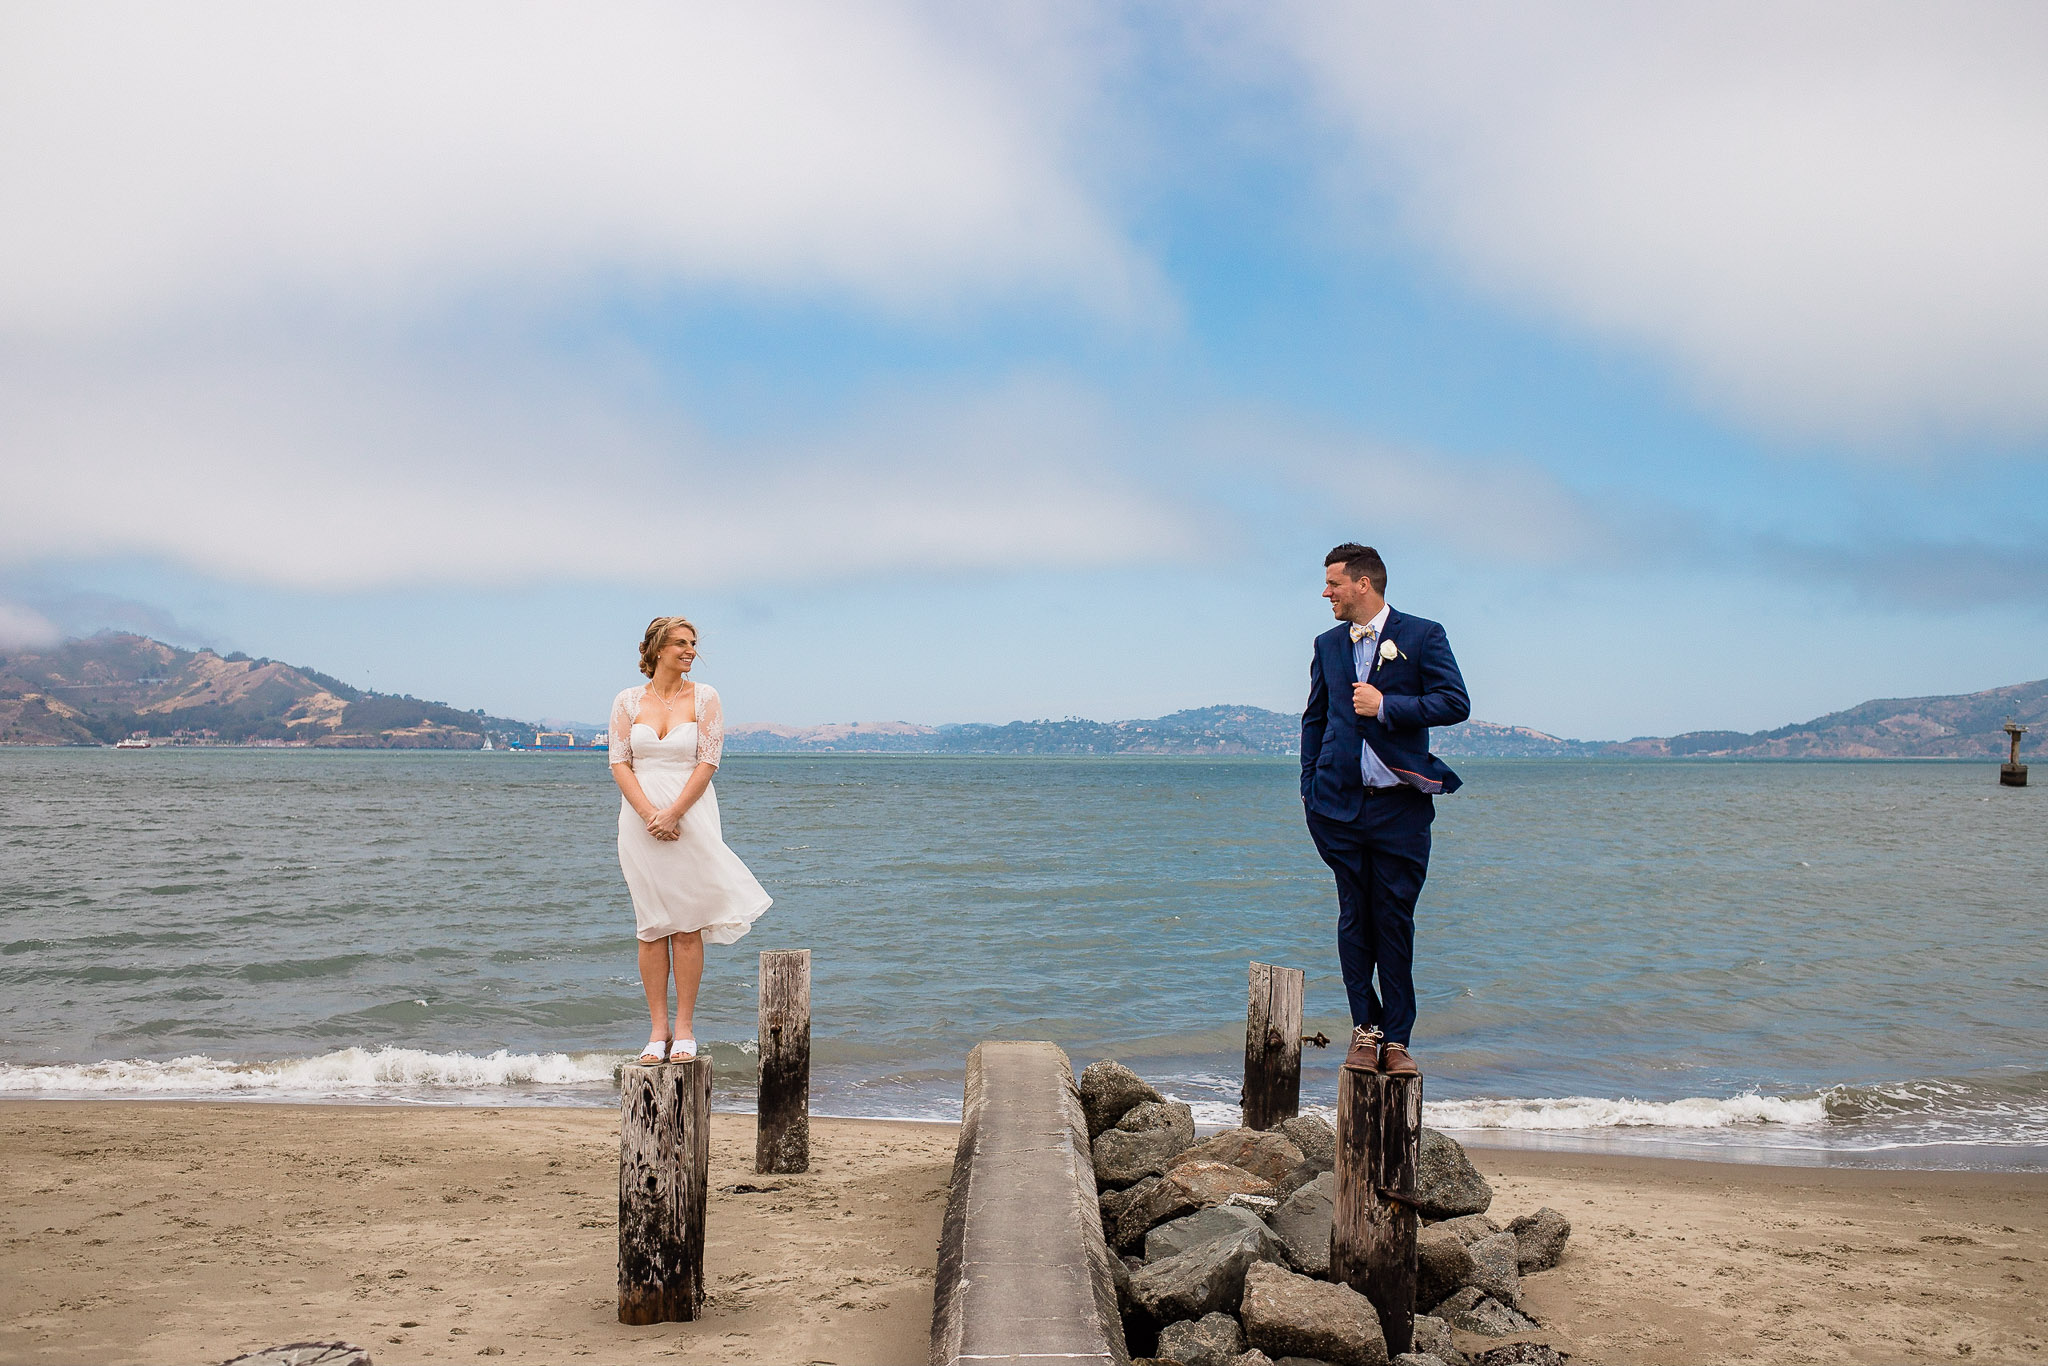 Bride and Groom pose for wedding photos near the Golden gate bridge